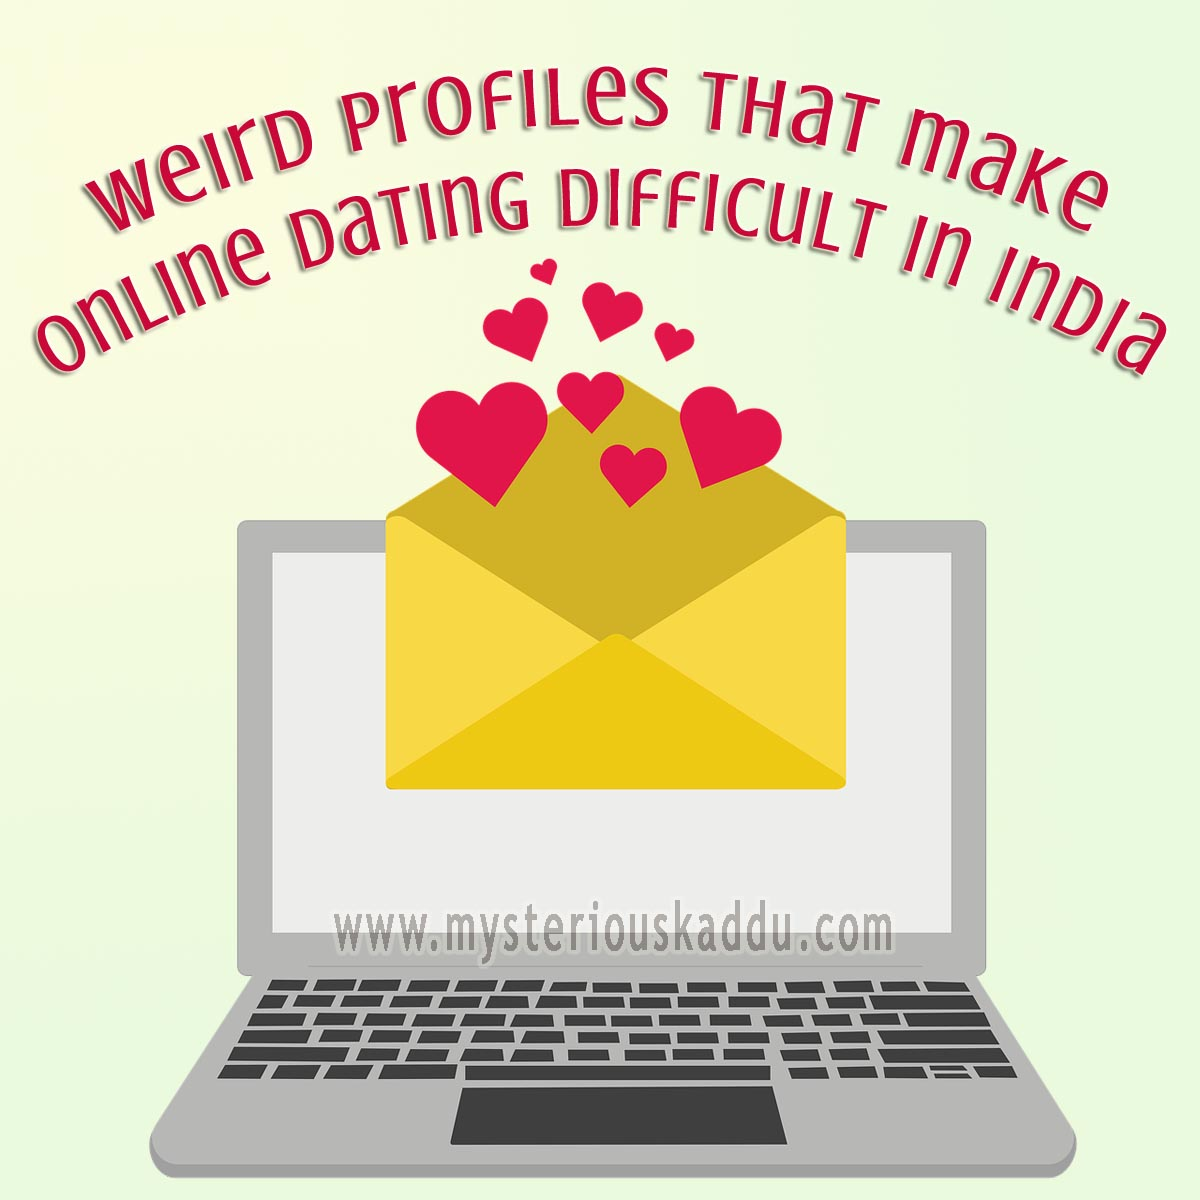 Weird Profiles That Make Online Dating Difficult In India